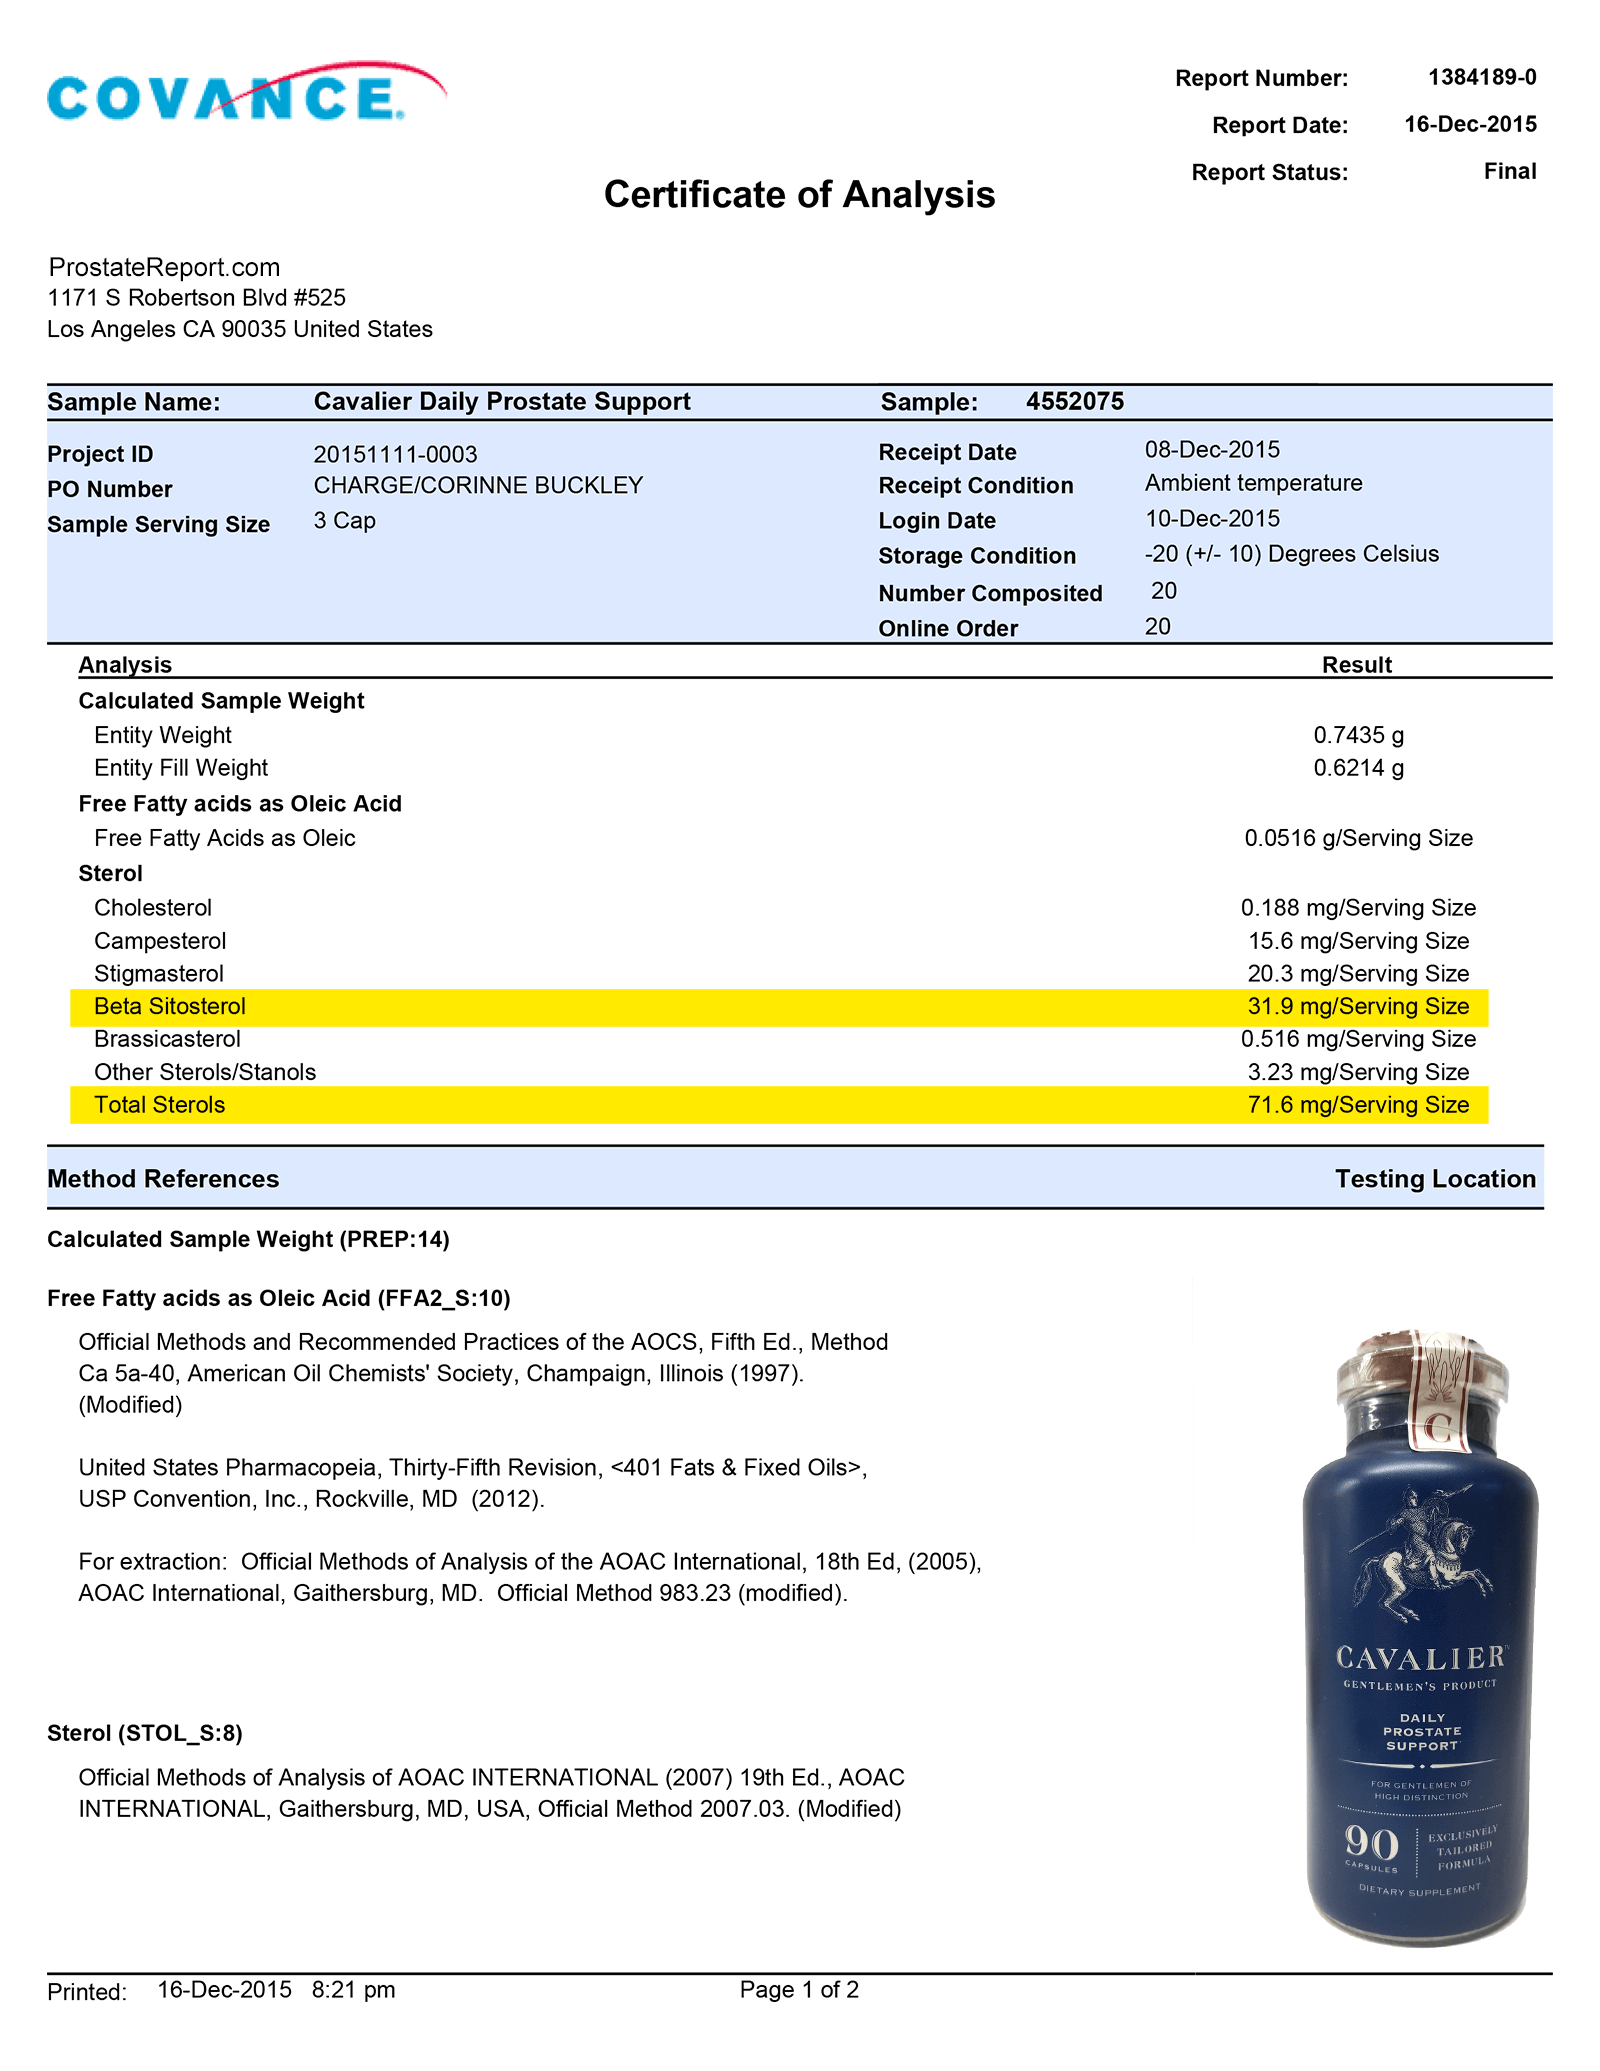 Cavalier Daily Prostate Support lab report